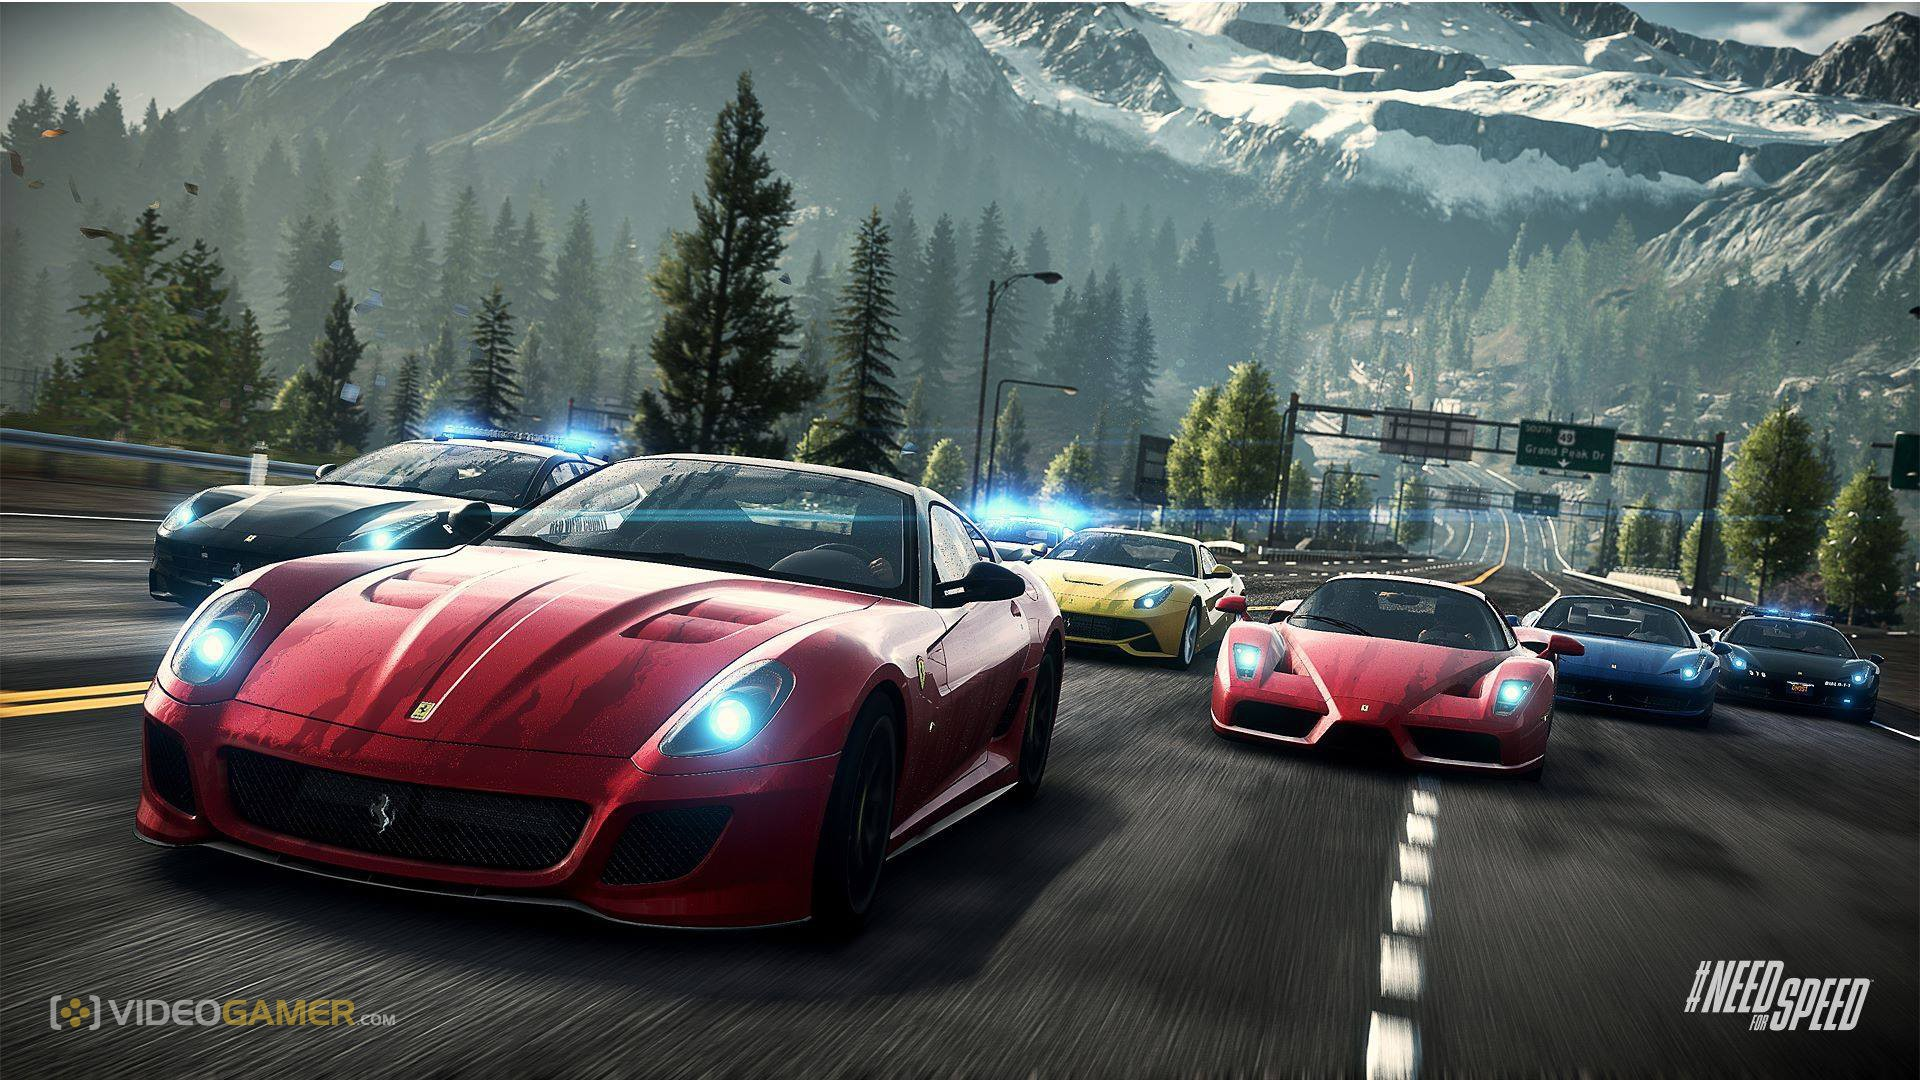 Need for speed rivals wallpaper 1920x1080 181253 for Need for speed wallpaper